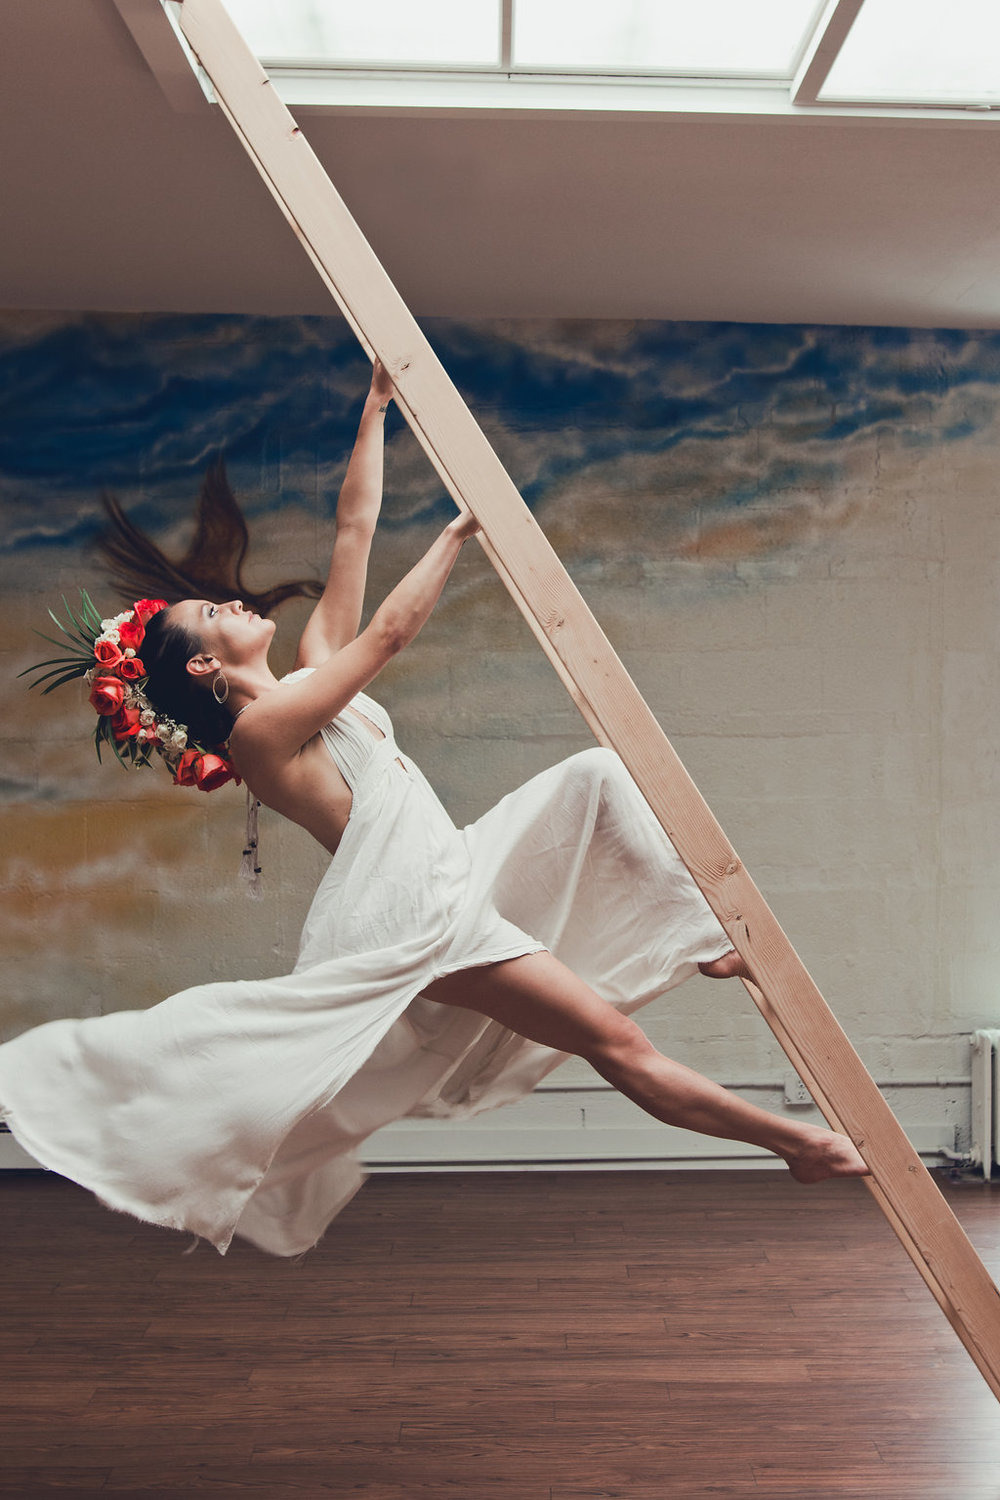 Lisa Rundall Wedding Photography Colorado model climbing back of ladder